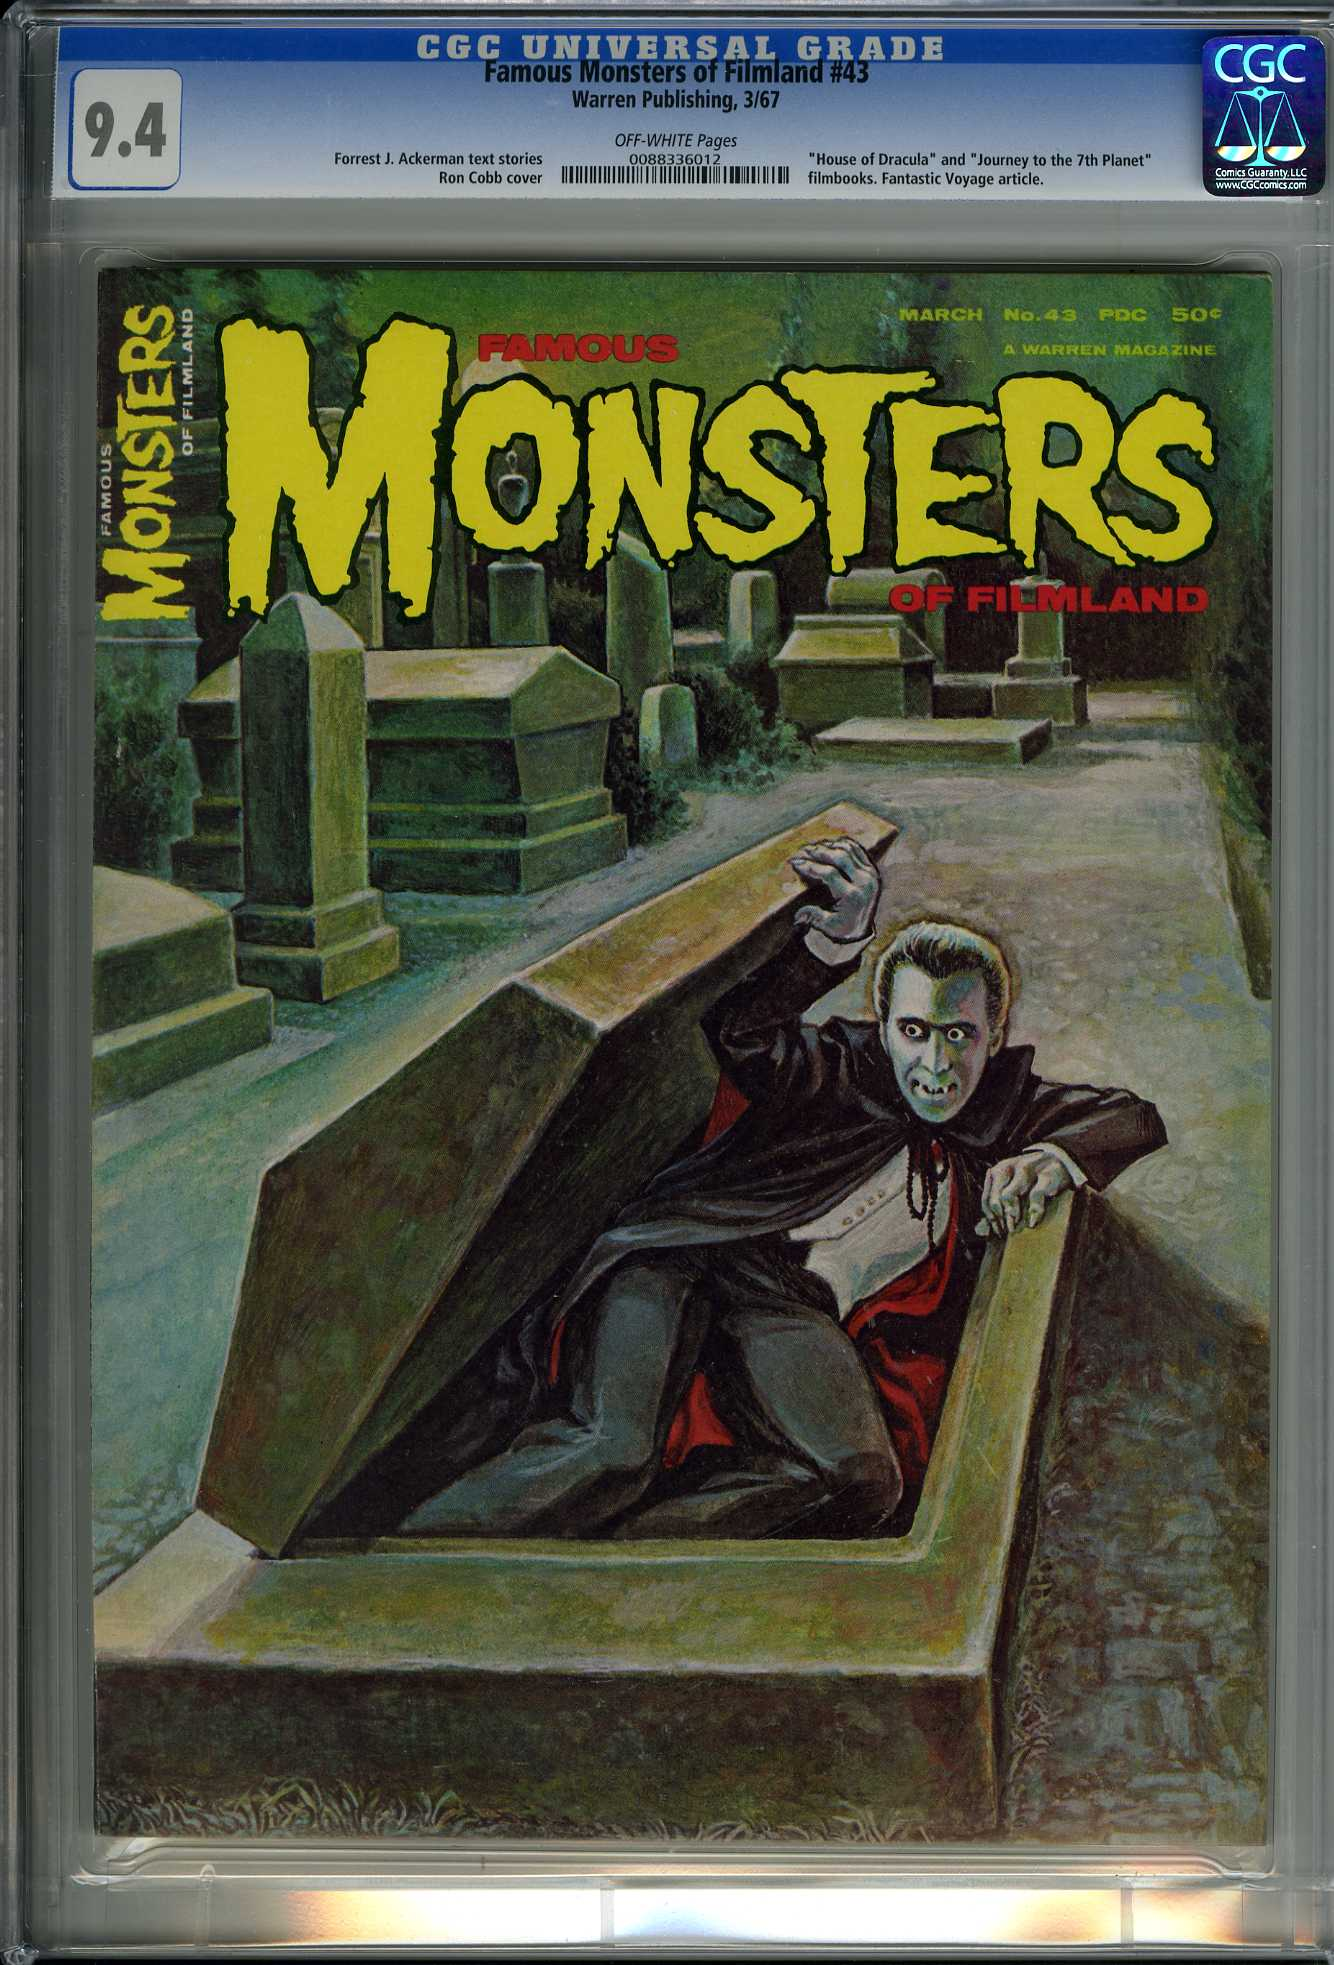 FAMOUS MONSTERS OF FILMLAND #43 1967 CGC NM 9.4 OW DRACULA - JOURNEY 7TH PLANET